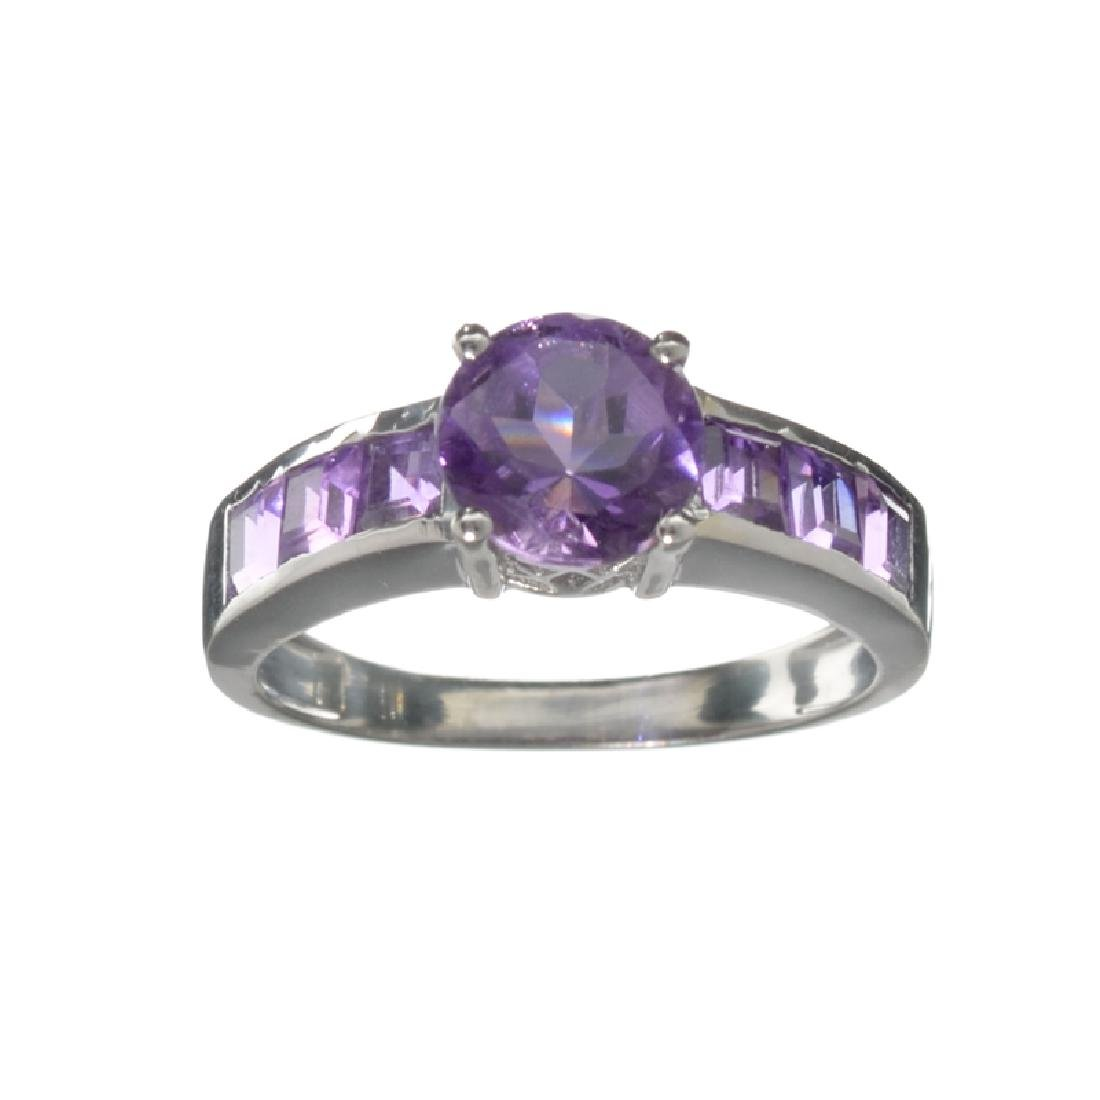 APP: 0.3k Fine Jewelry 2.15CT Purple Amethyst And